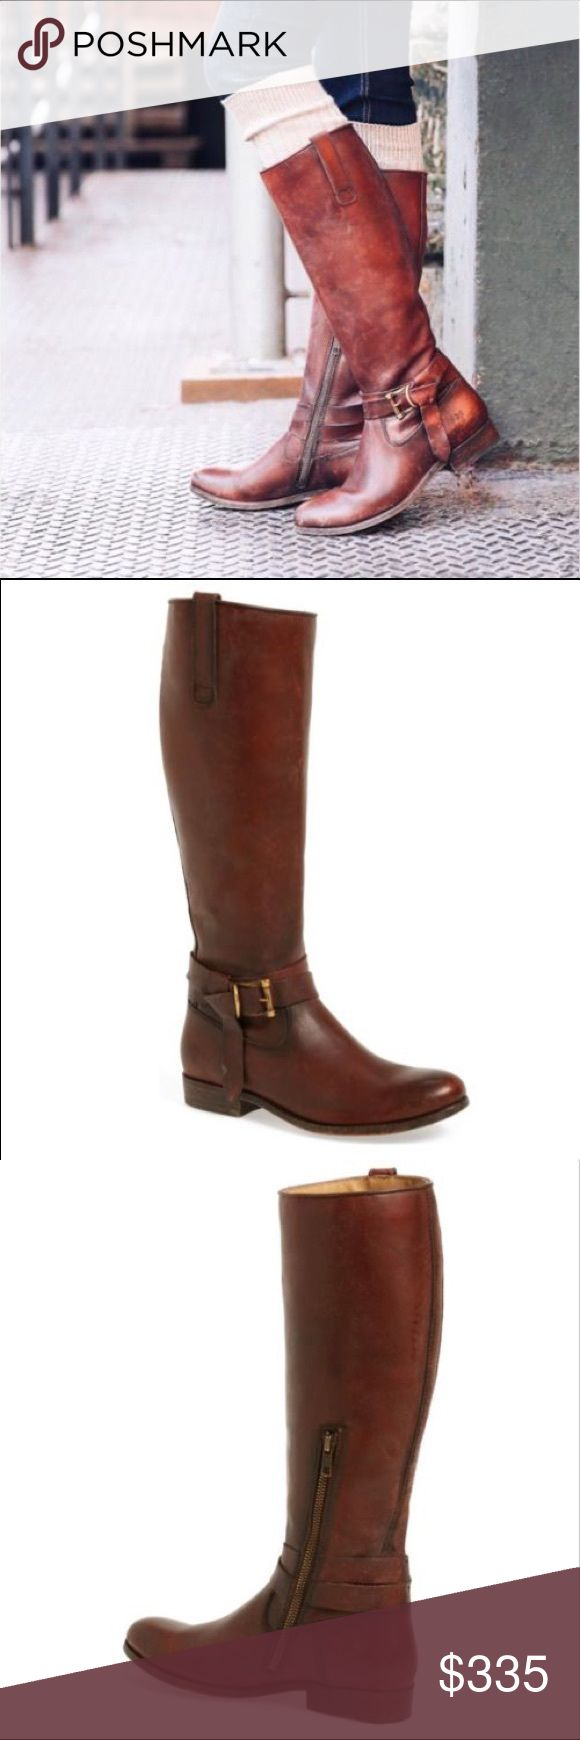 """NEW Frye Melissa Knotted Redwood Boots A leather knot with a brushed metal buckle lends on trend style to a Frye riding boot bench crafted from rich grain leather that gets softer and slouchier with wear. A pull on tab tops the sleek  silhouette, making it quick to get on and off.  1"""" heel. 15"""" boot shaft. 14 1/4"""" circumference. Side zip closure. Leather upper, lining, sole. Frye Shoes Heeled Boots"""